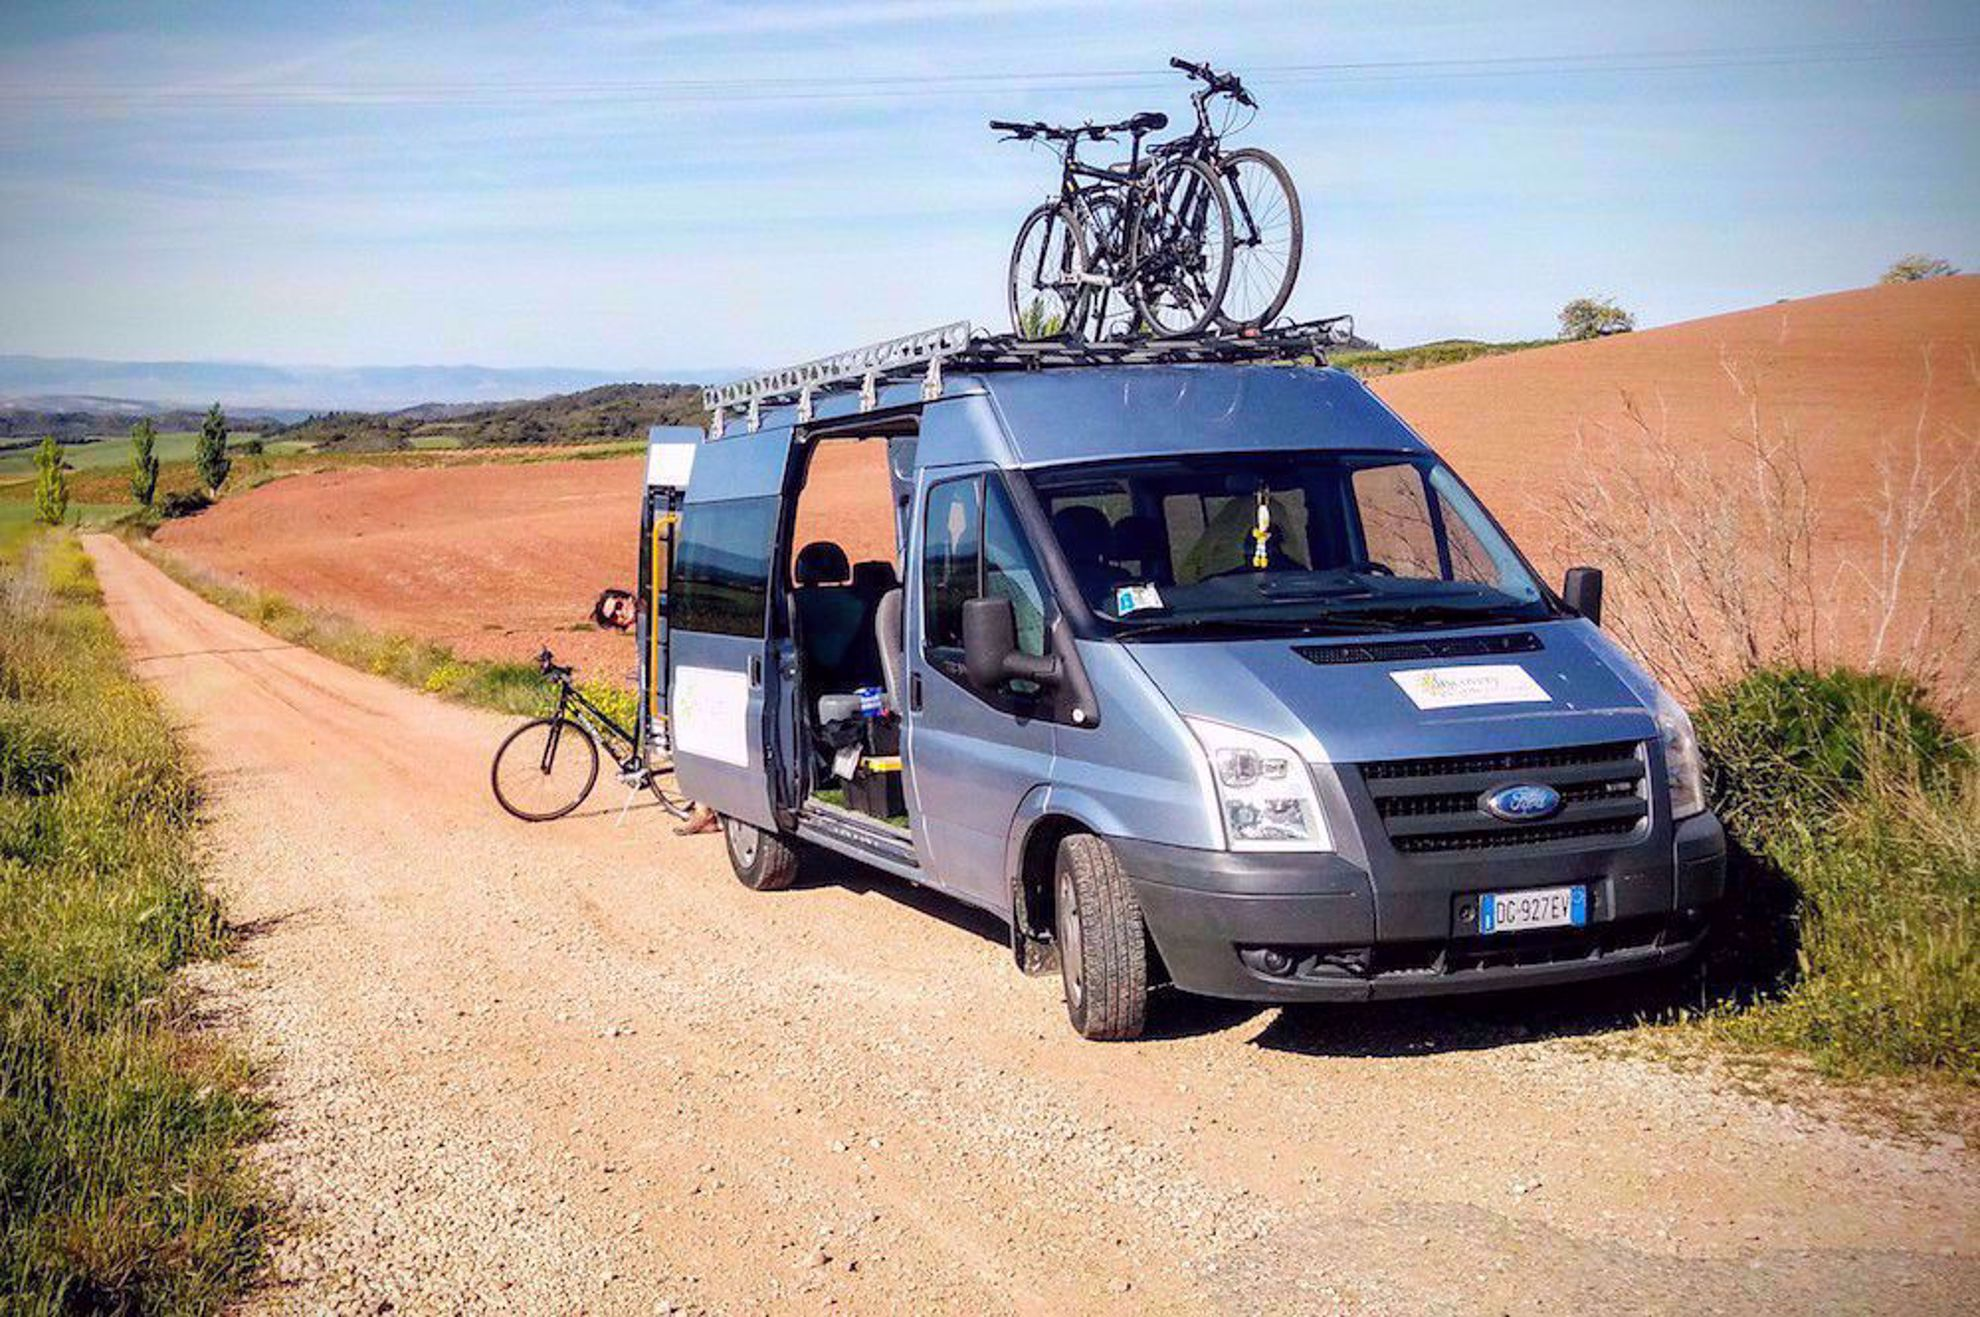 Van on the Camino, Spain